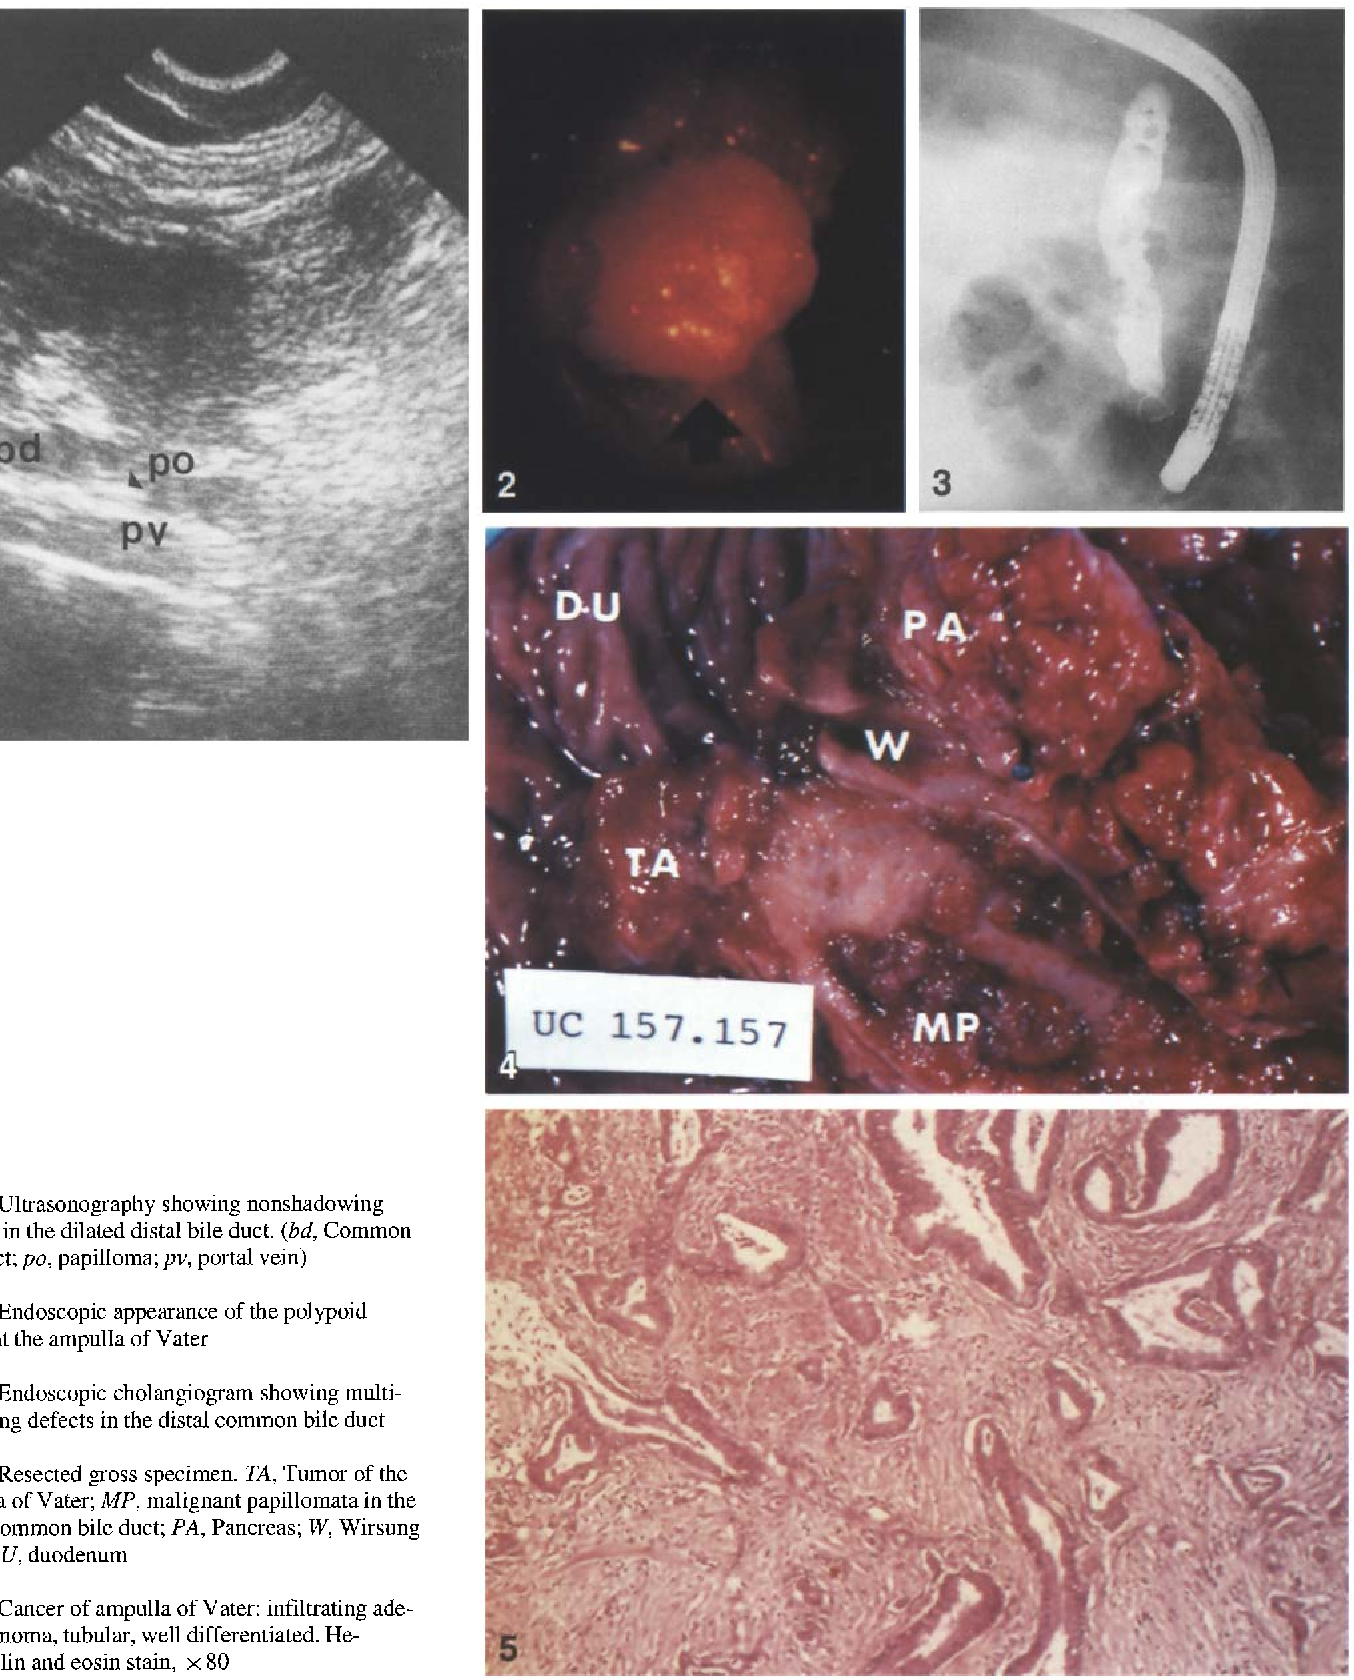 papillomatosis of duct